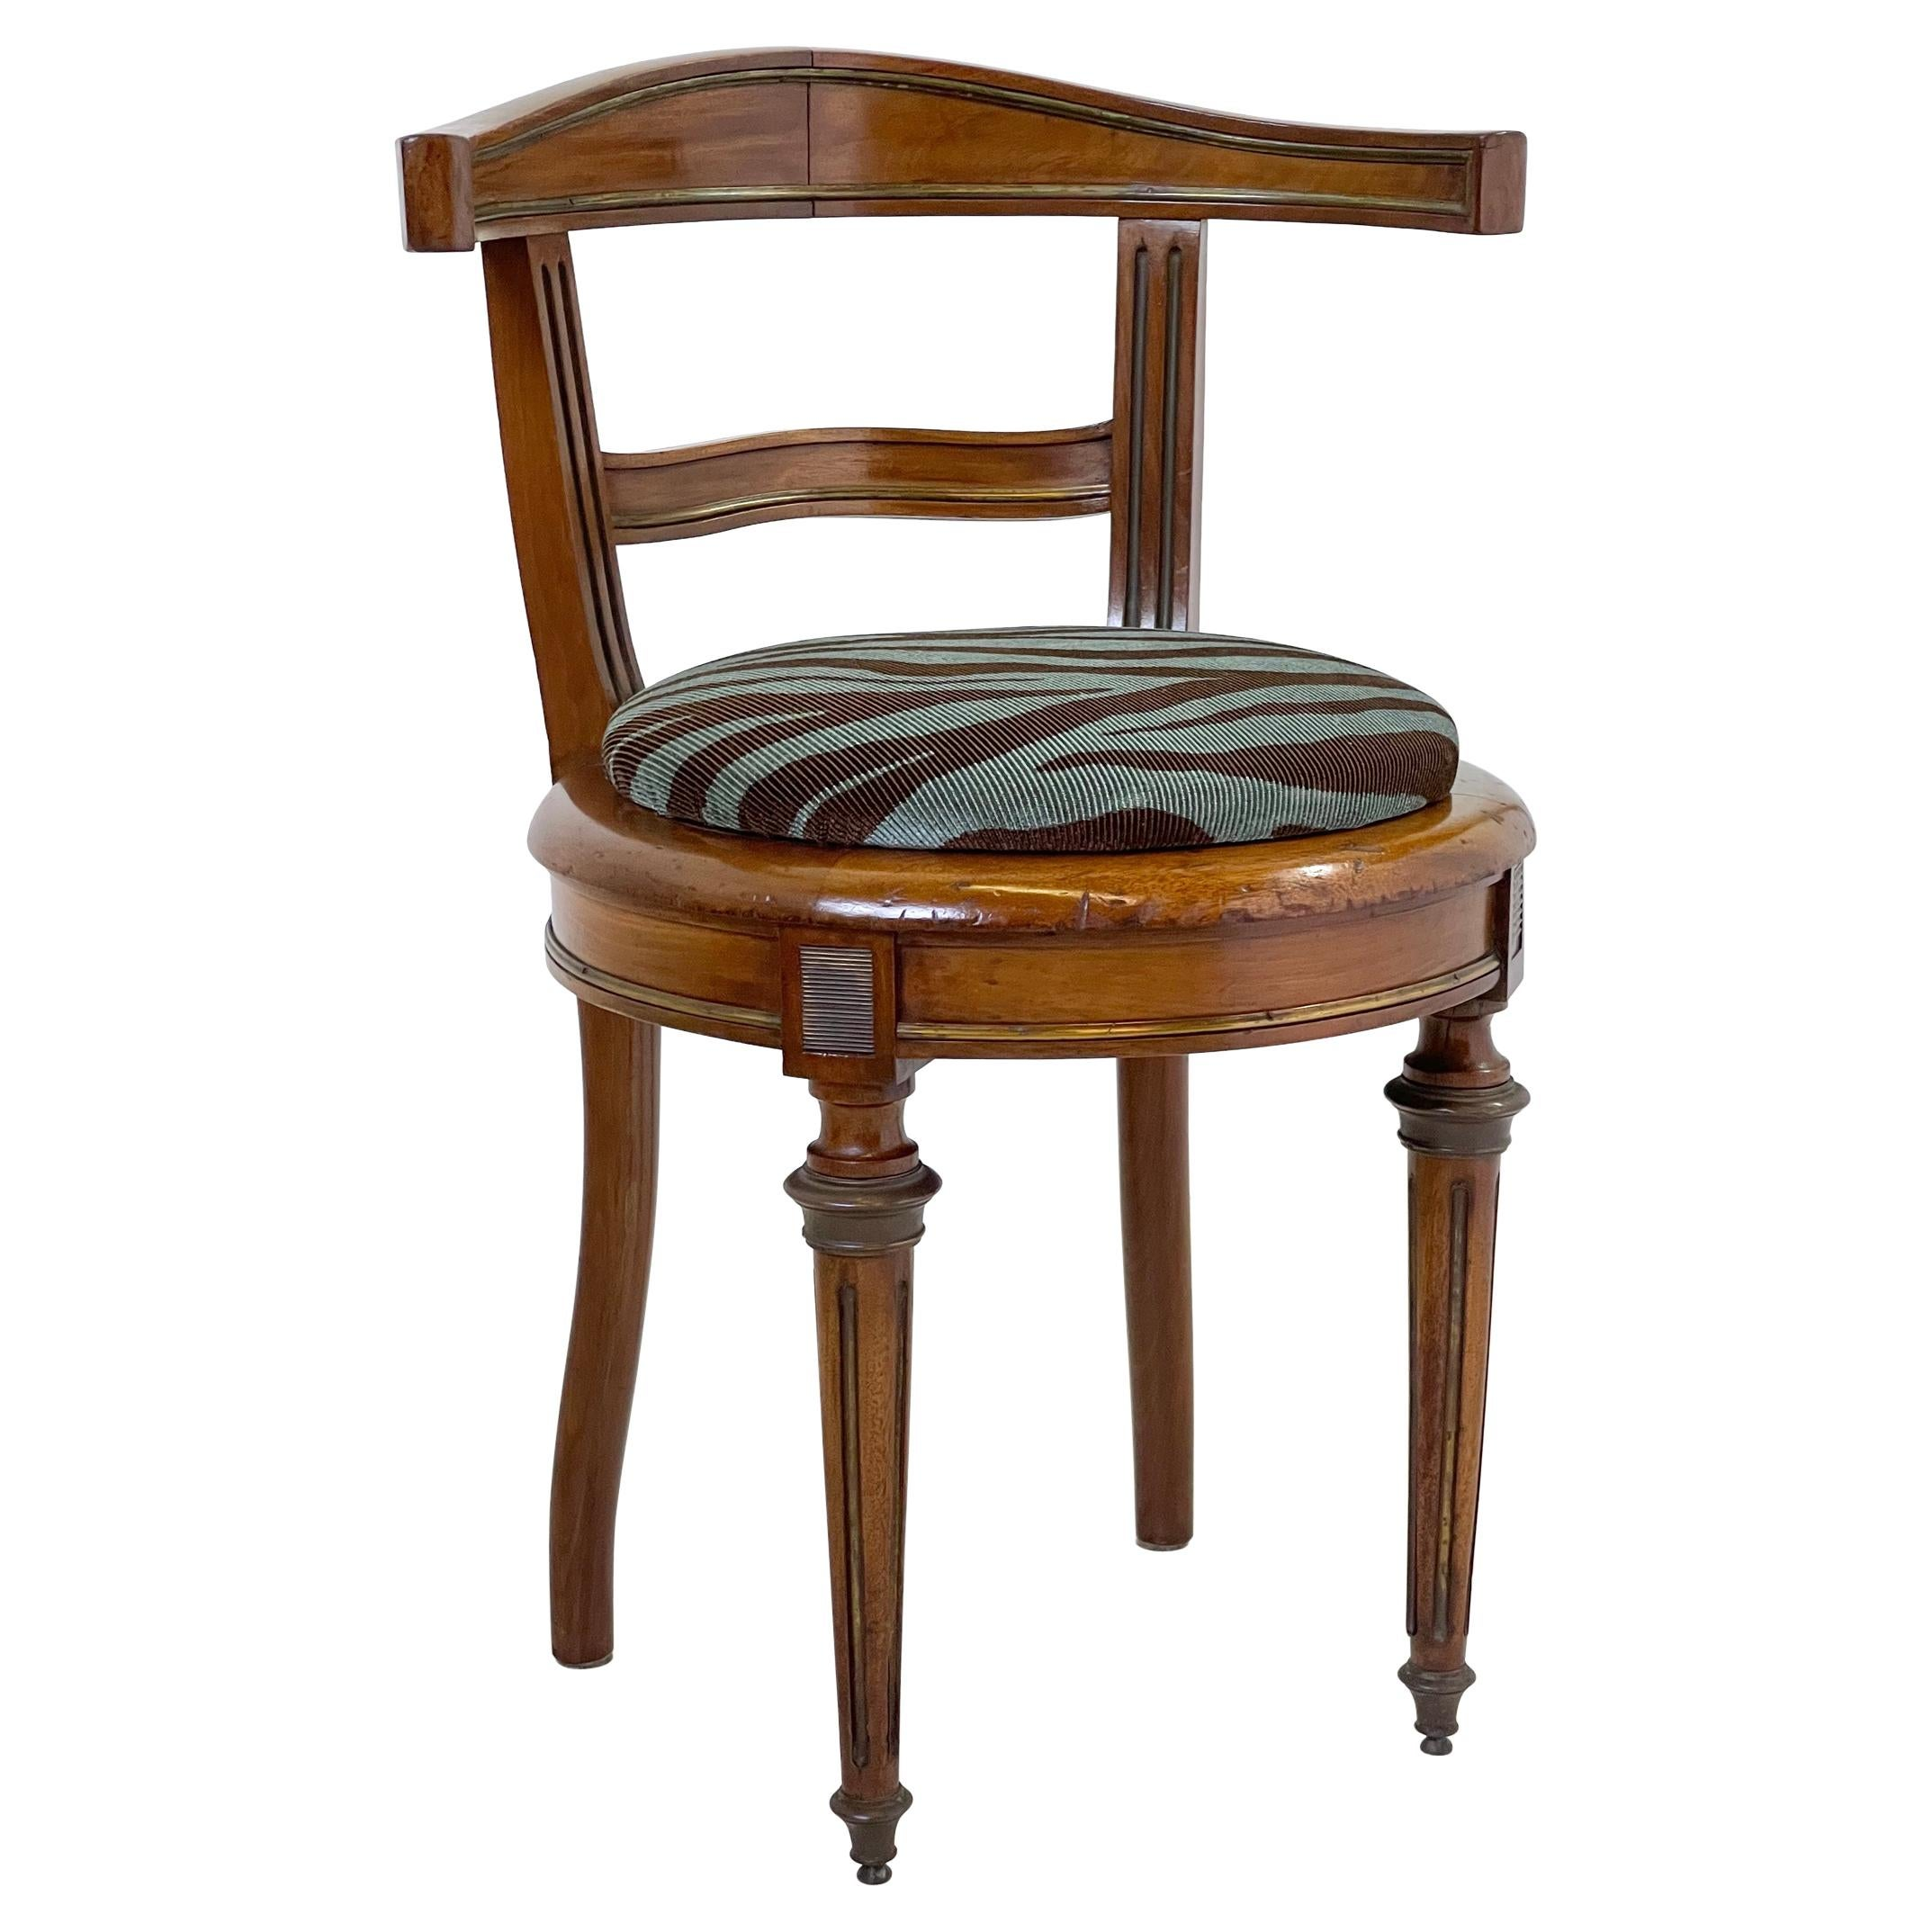 Neoclassical Vanity Chair of Walnut and Brass